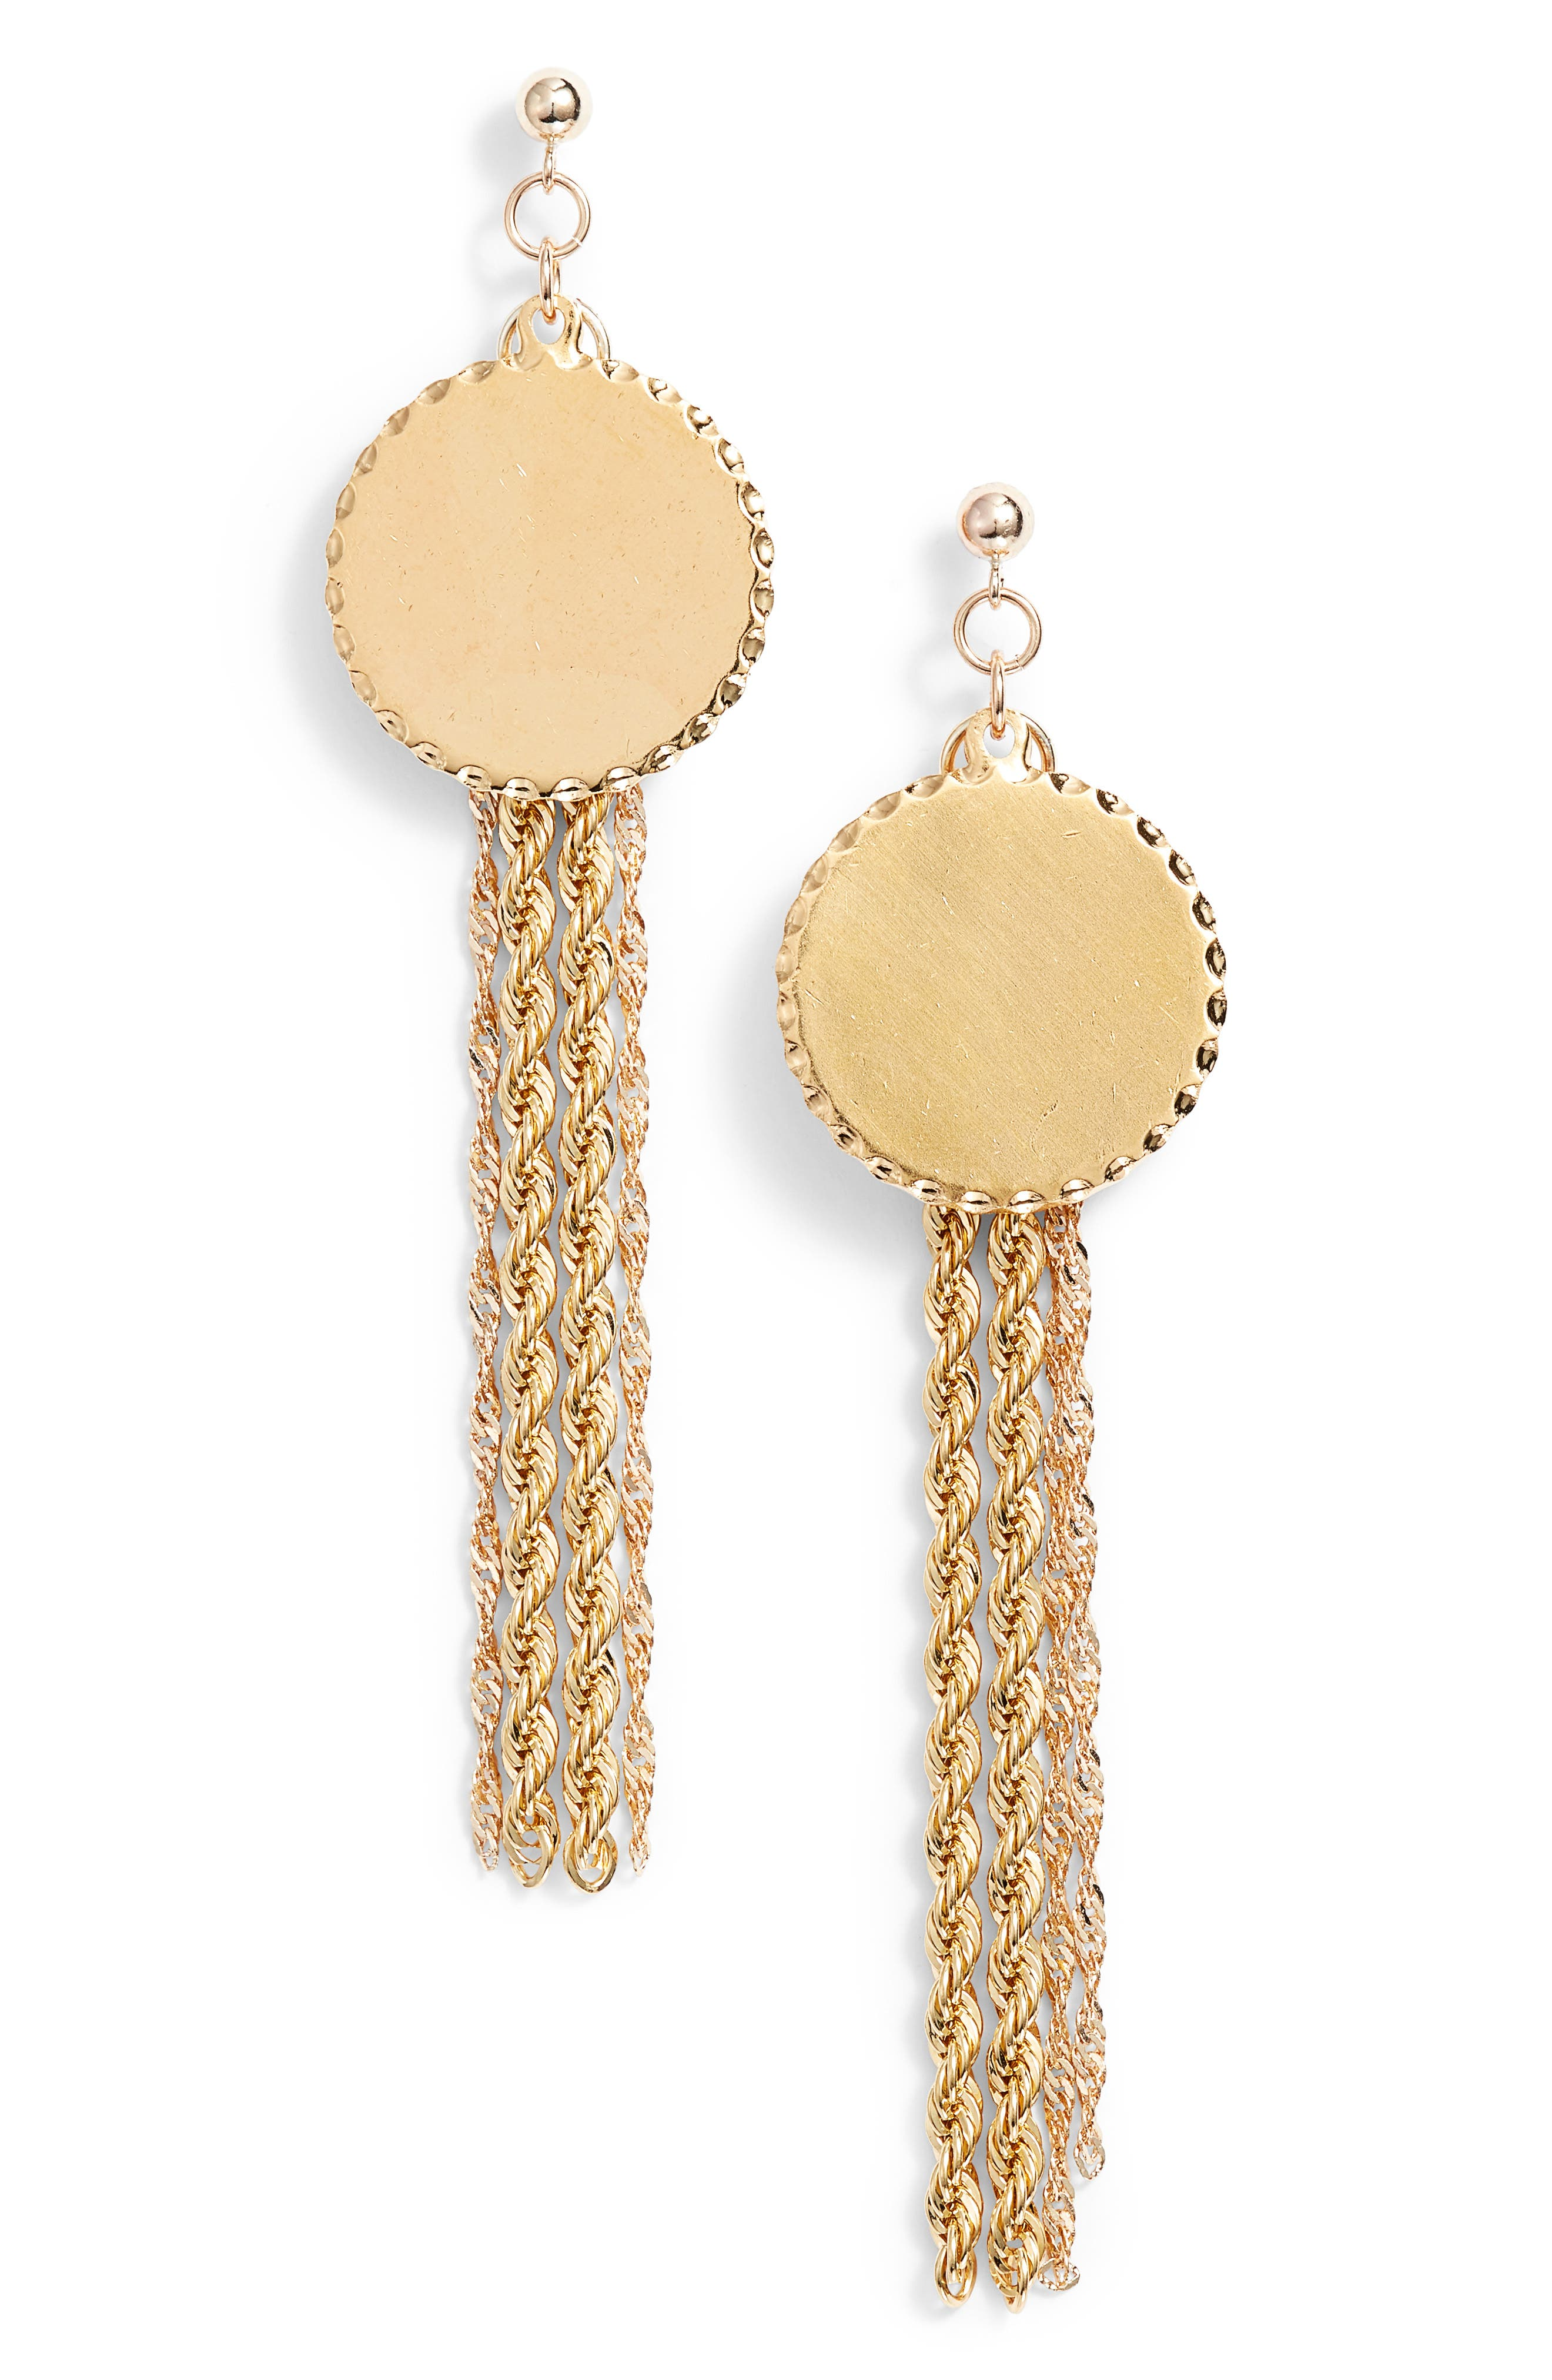 Temperance Chain Fringe Earrings,                             Main thumbnail 1, color,                             YELLOW GOLD